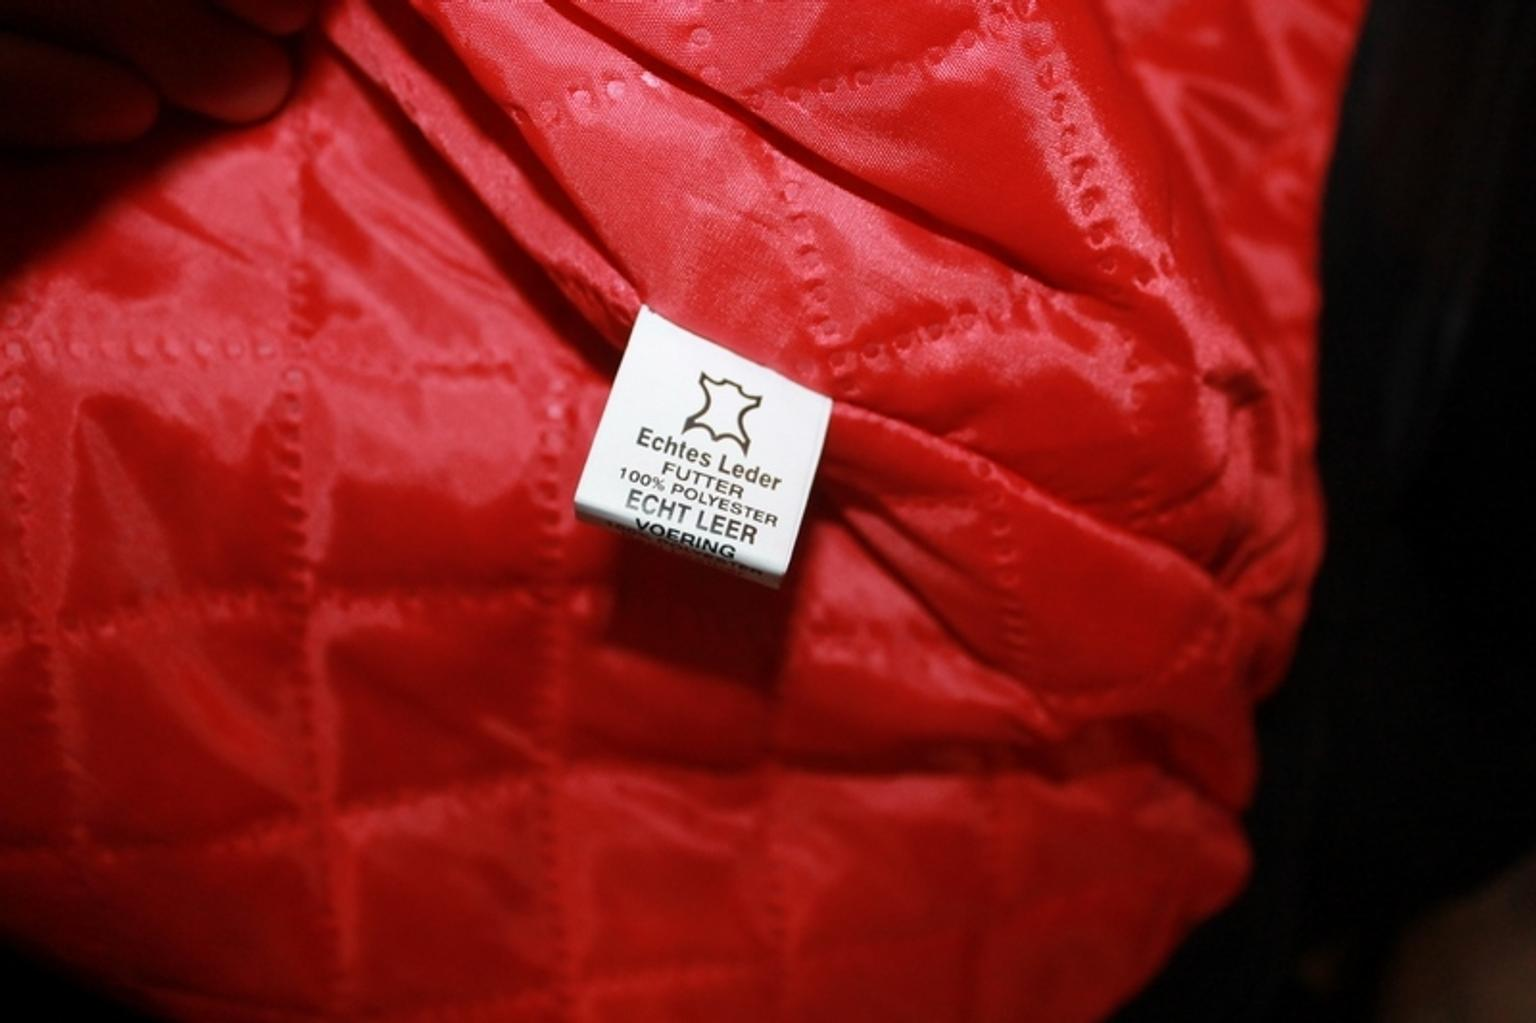 Cappotto imperial in 21047 Saronno for €30.00 for sale | Shpock